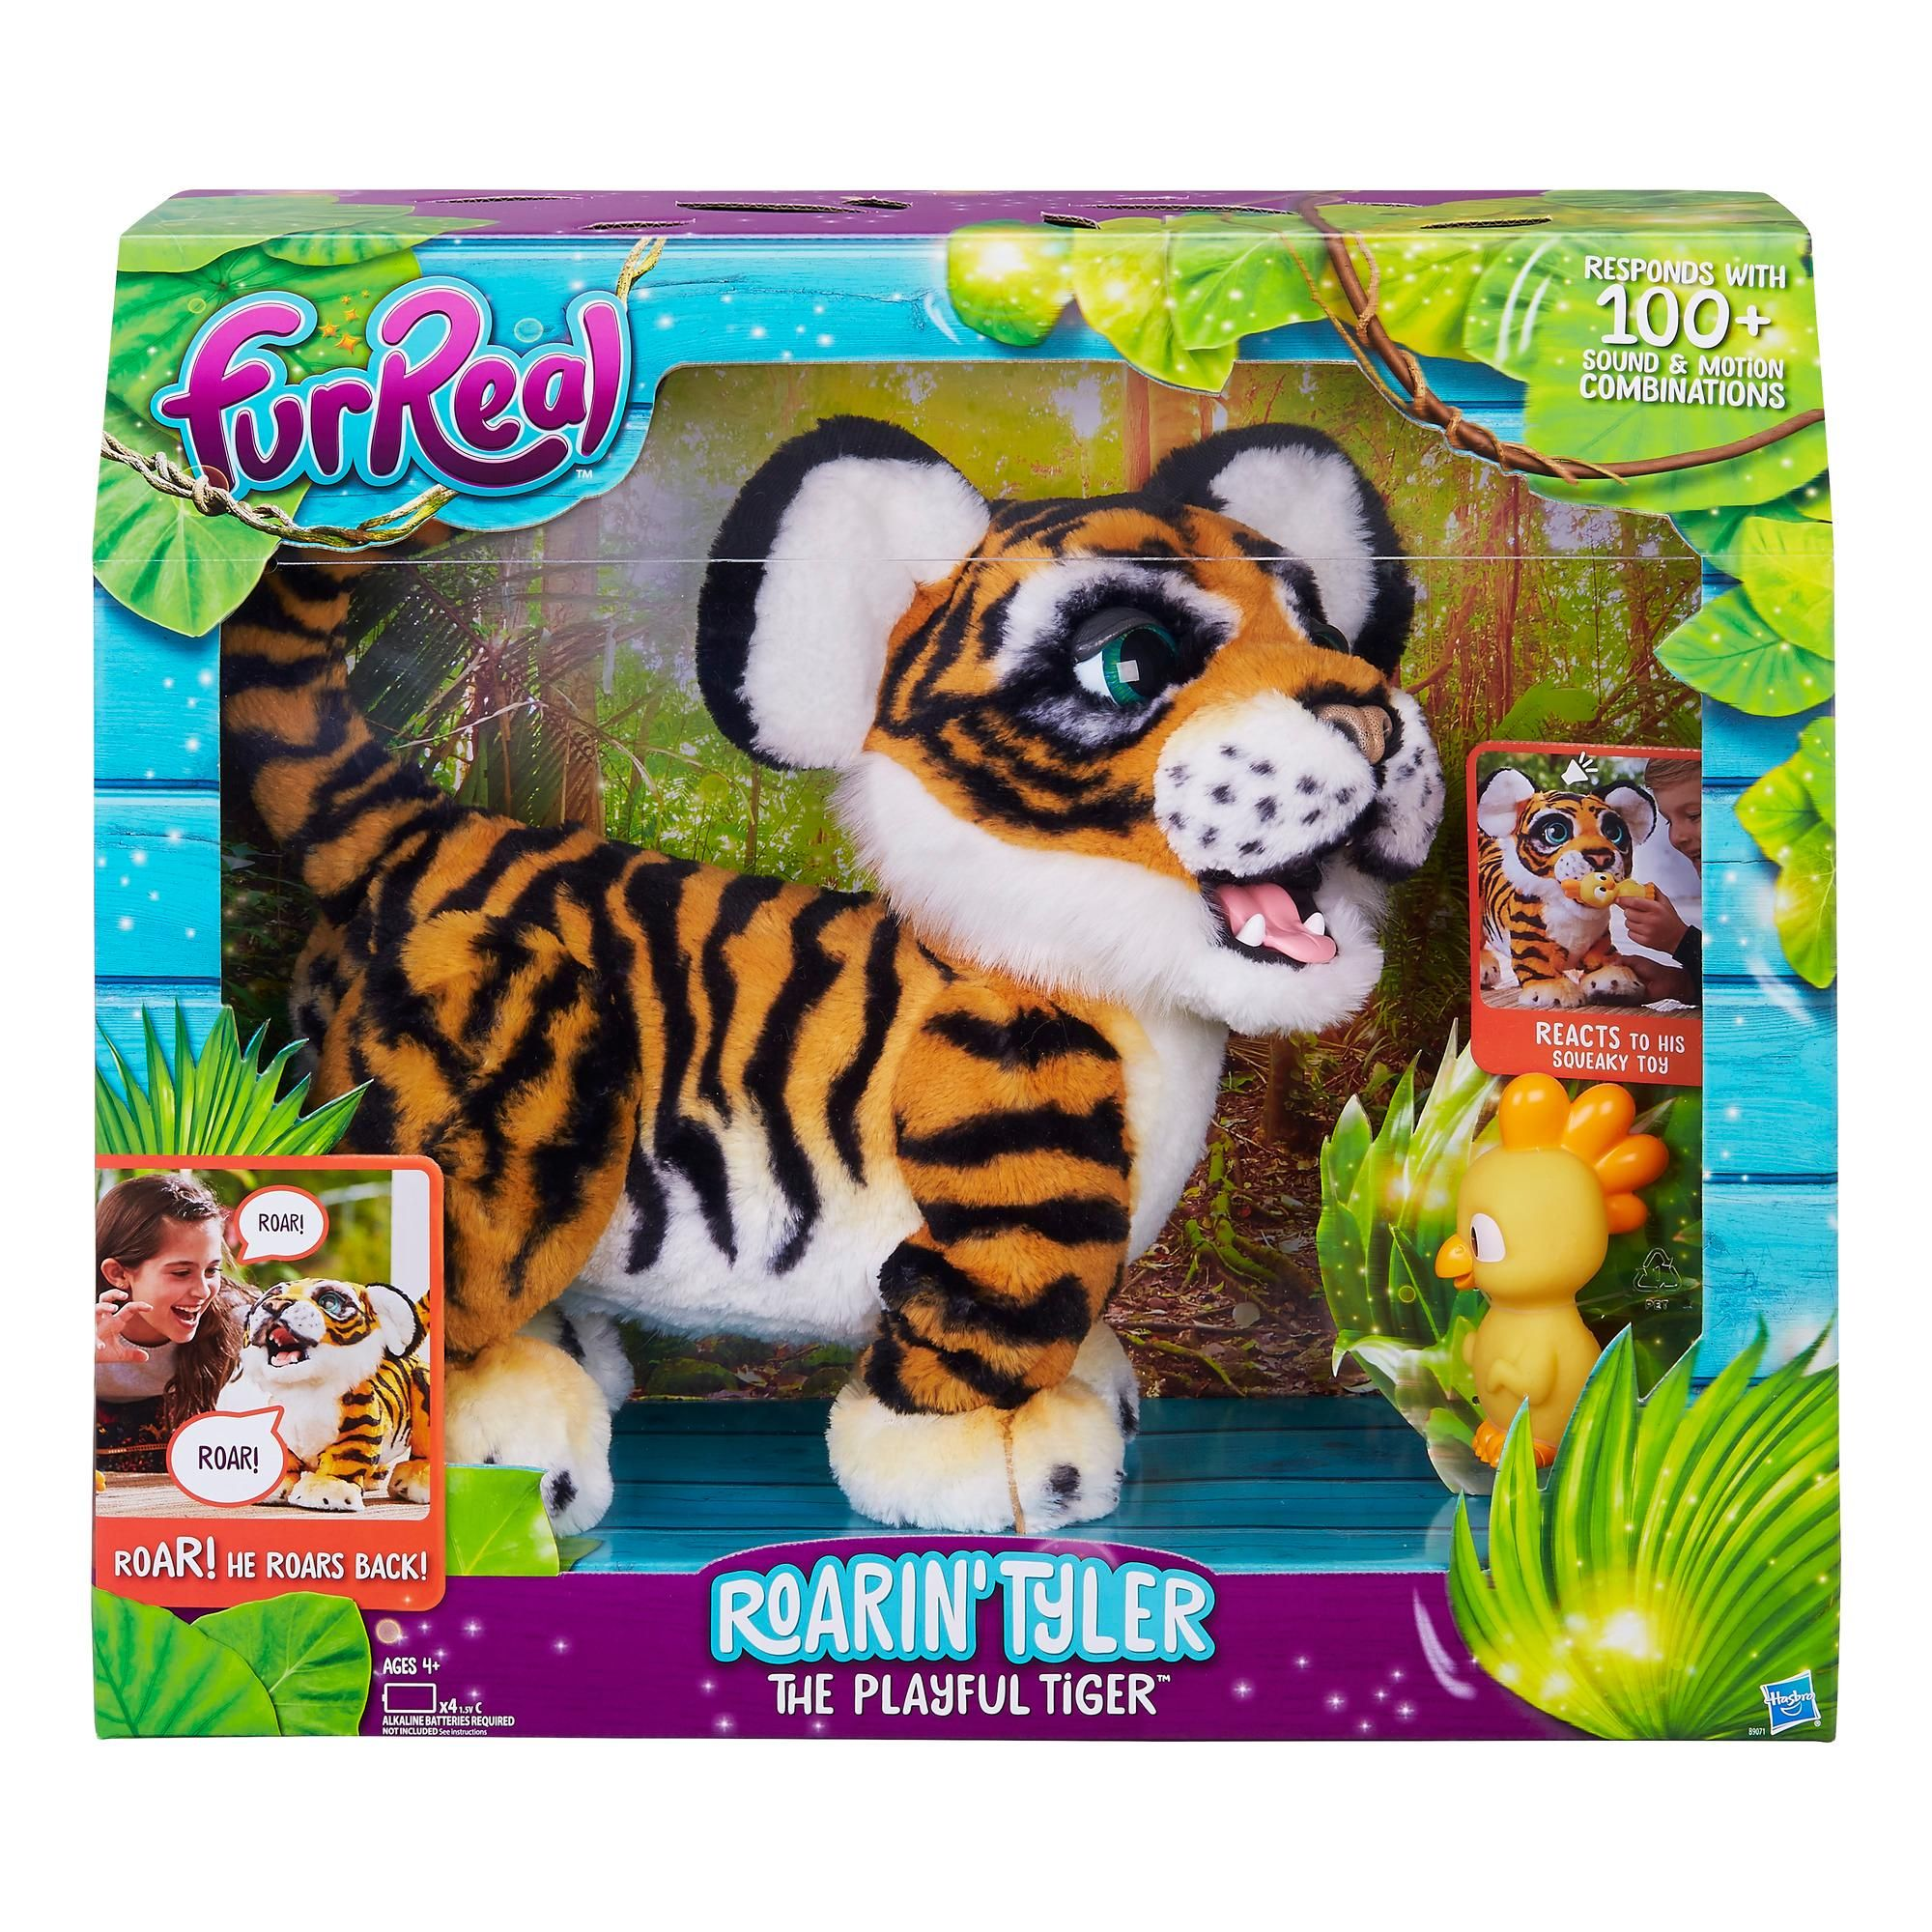 Amazon Com Furreal Roarin Tyler The Playful Tiger Toys Games Fur Real Friends Little Live Pets Interactive Toys